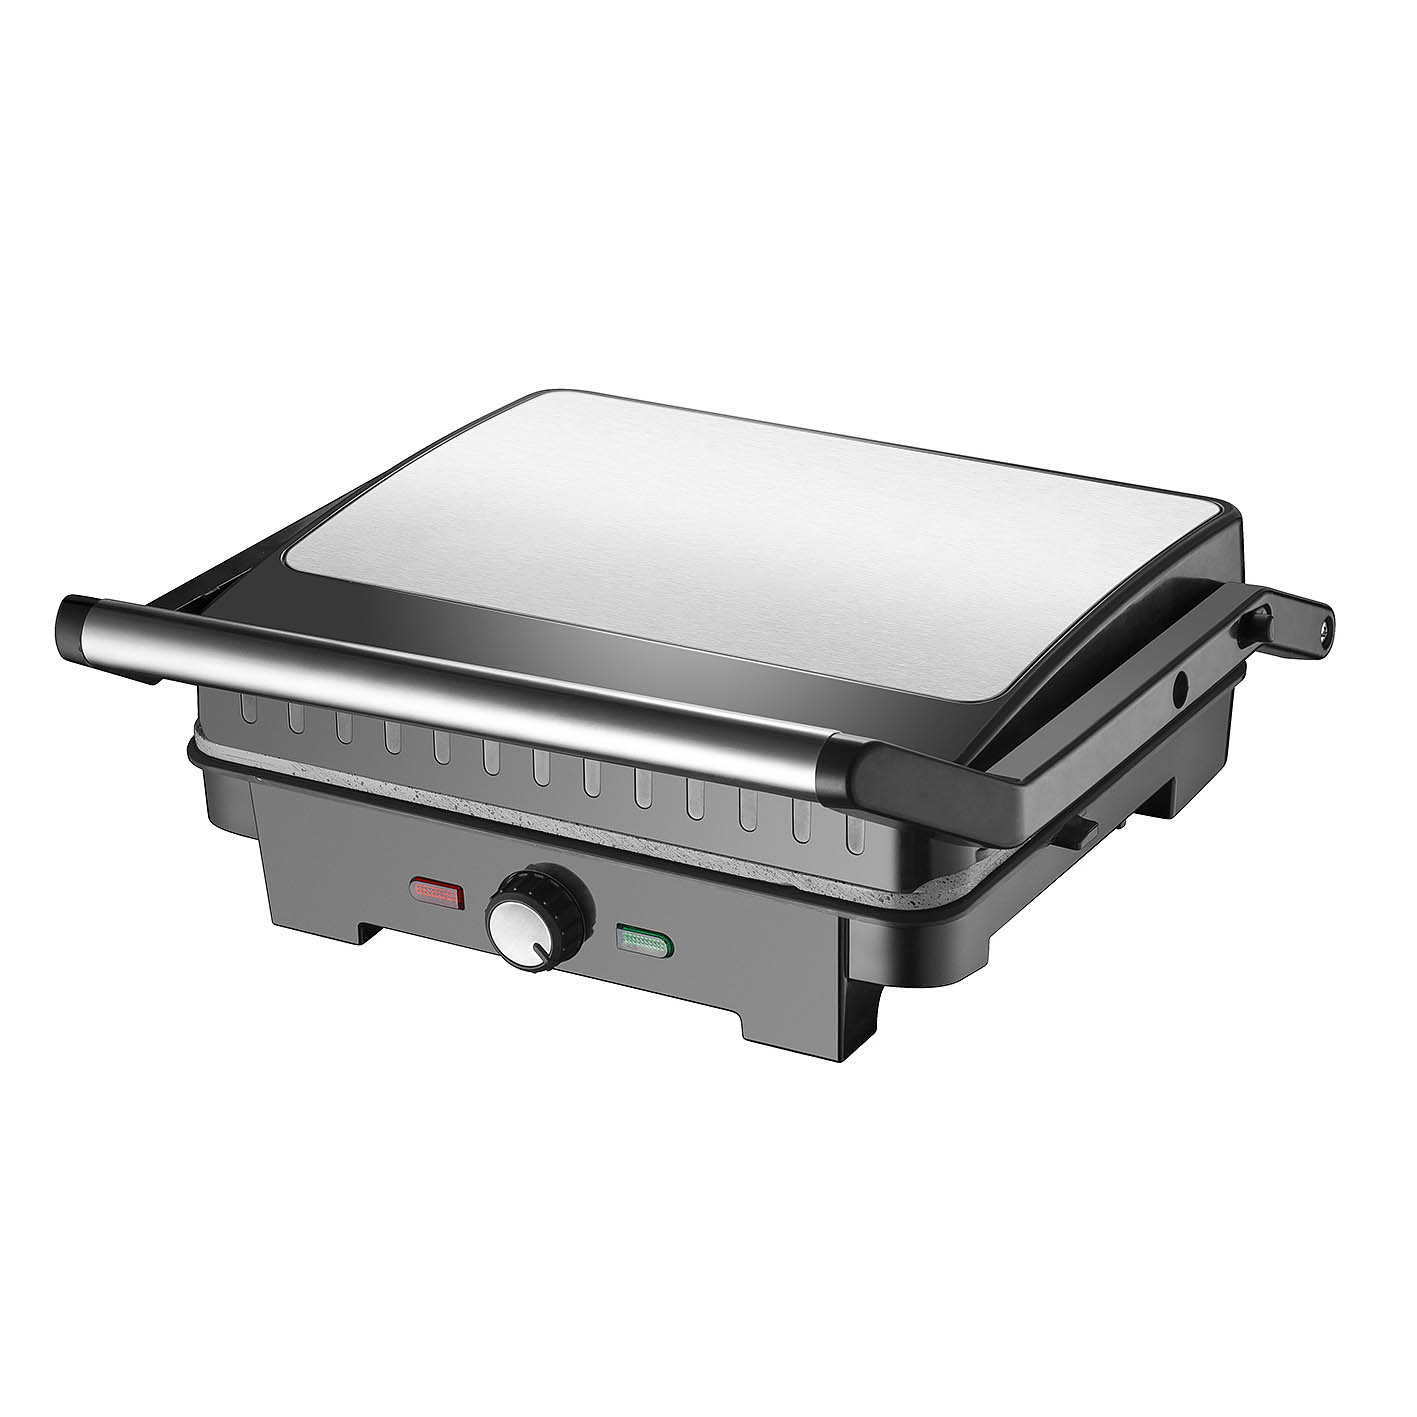 CG-011 Electric Grill